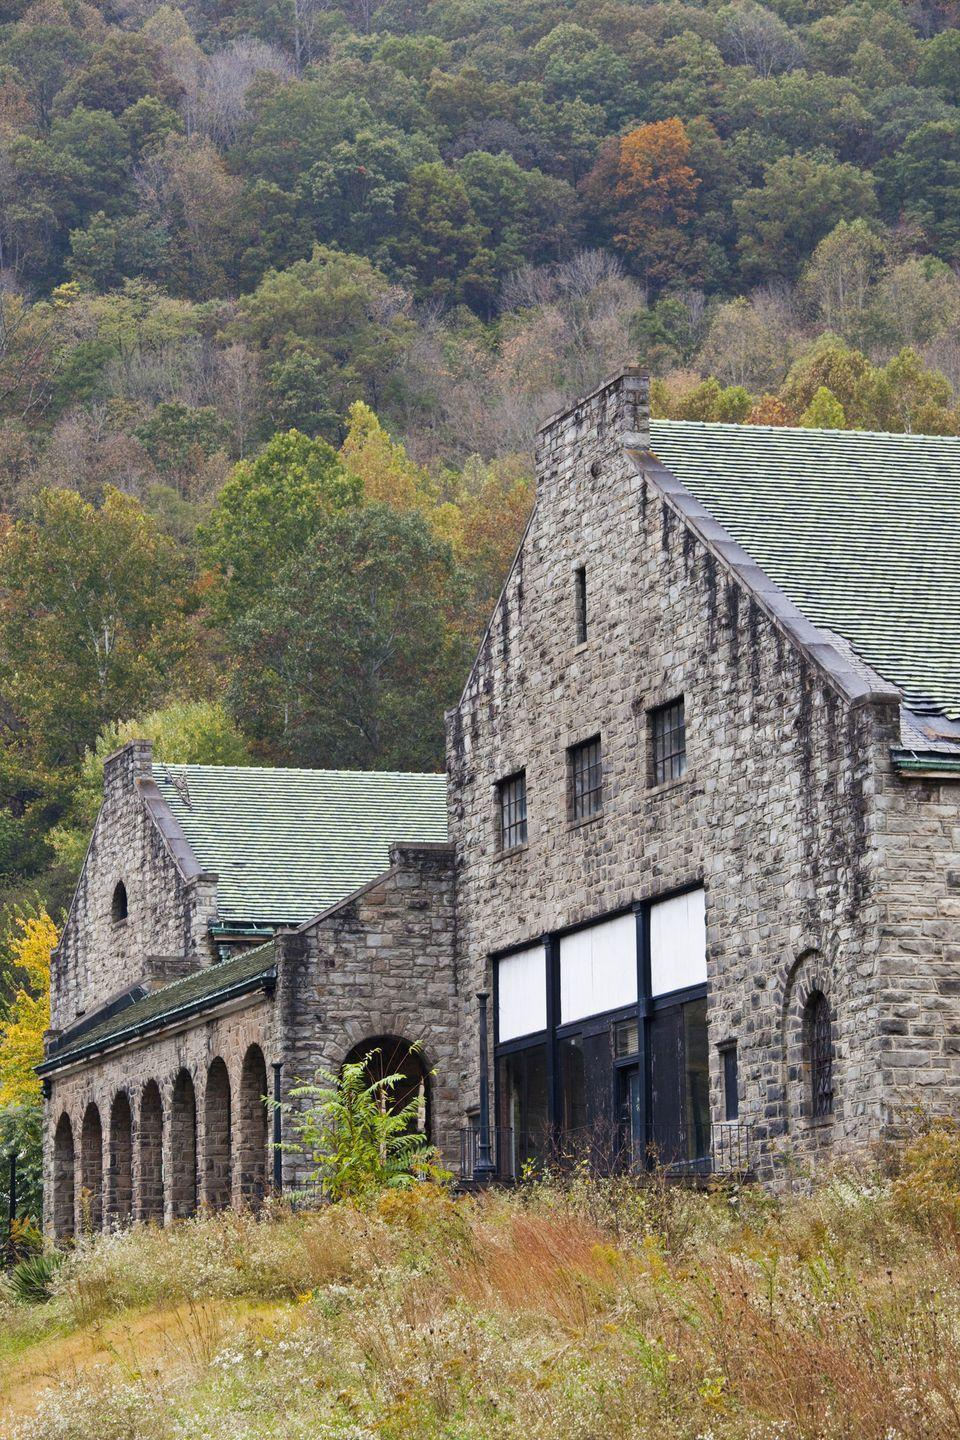 <p><strong>Population</strong><strong>:</strong> 5</p><p><br><br><br>This nearly abandoned coal mining town was the setting for the 1987 movie <em>Matewan</em>.<br></p>